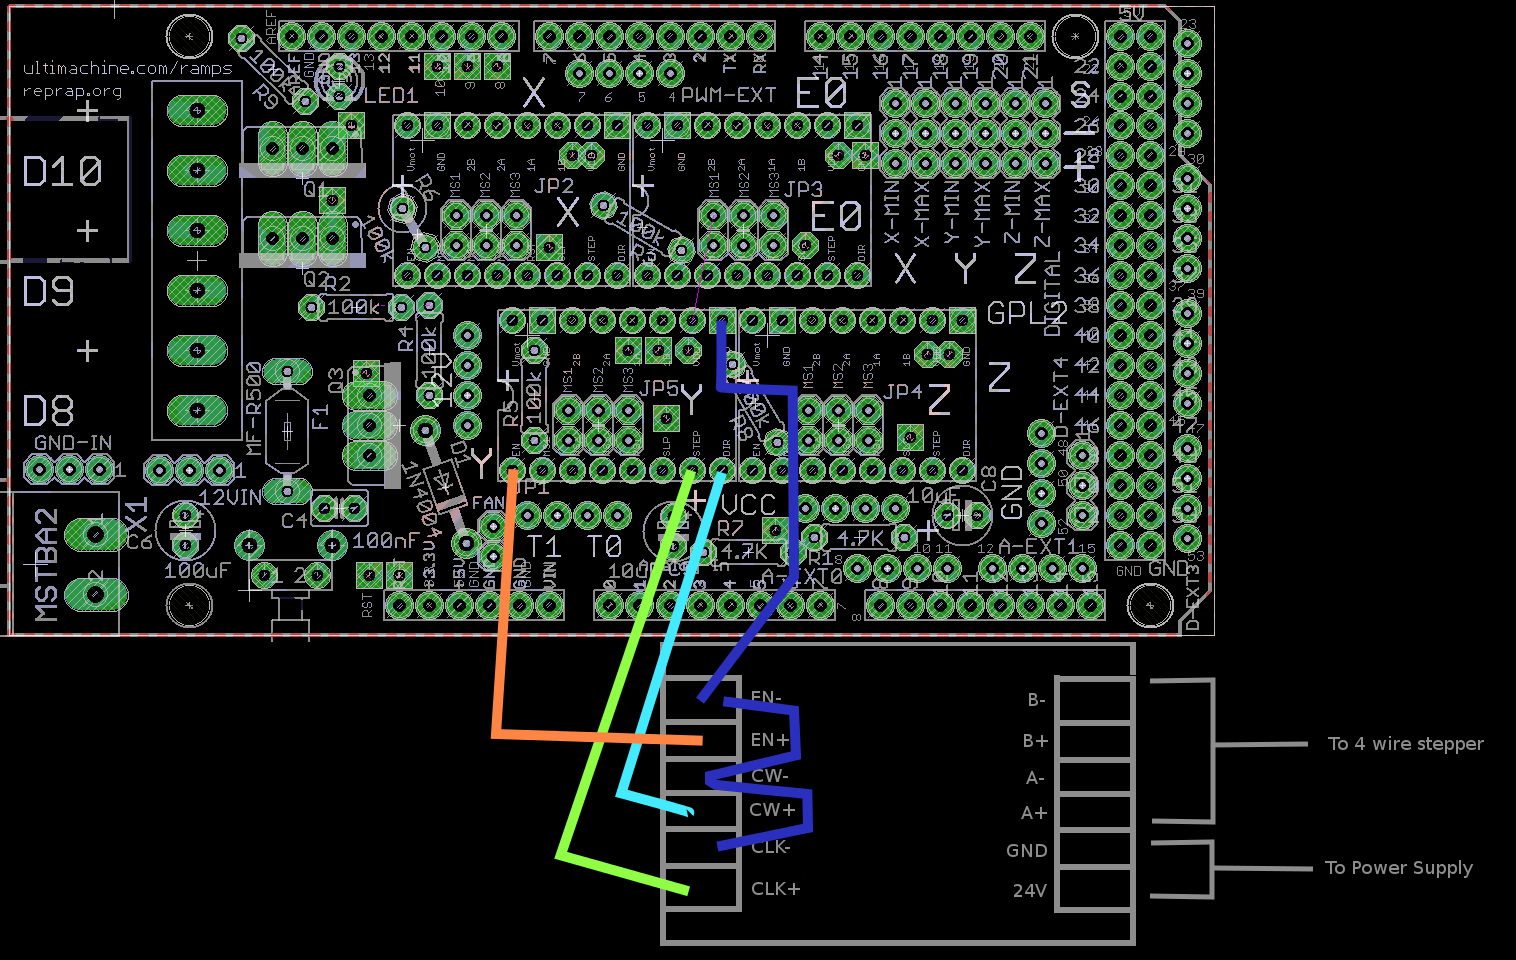 small resolution of necessary wiring i have bashed together an example wiring diagram for replacing